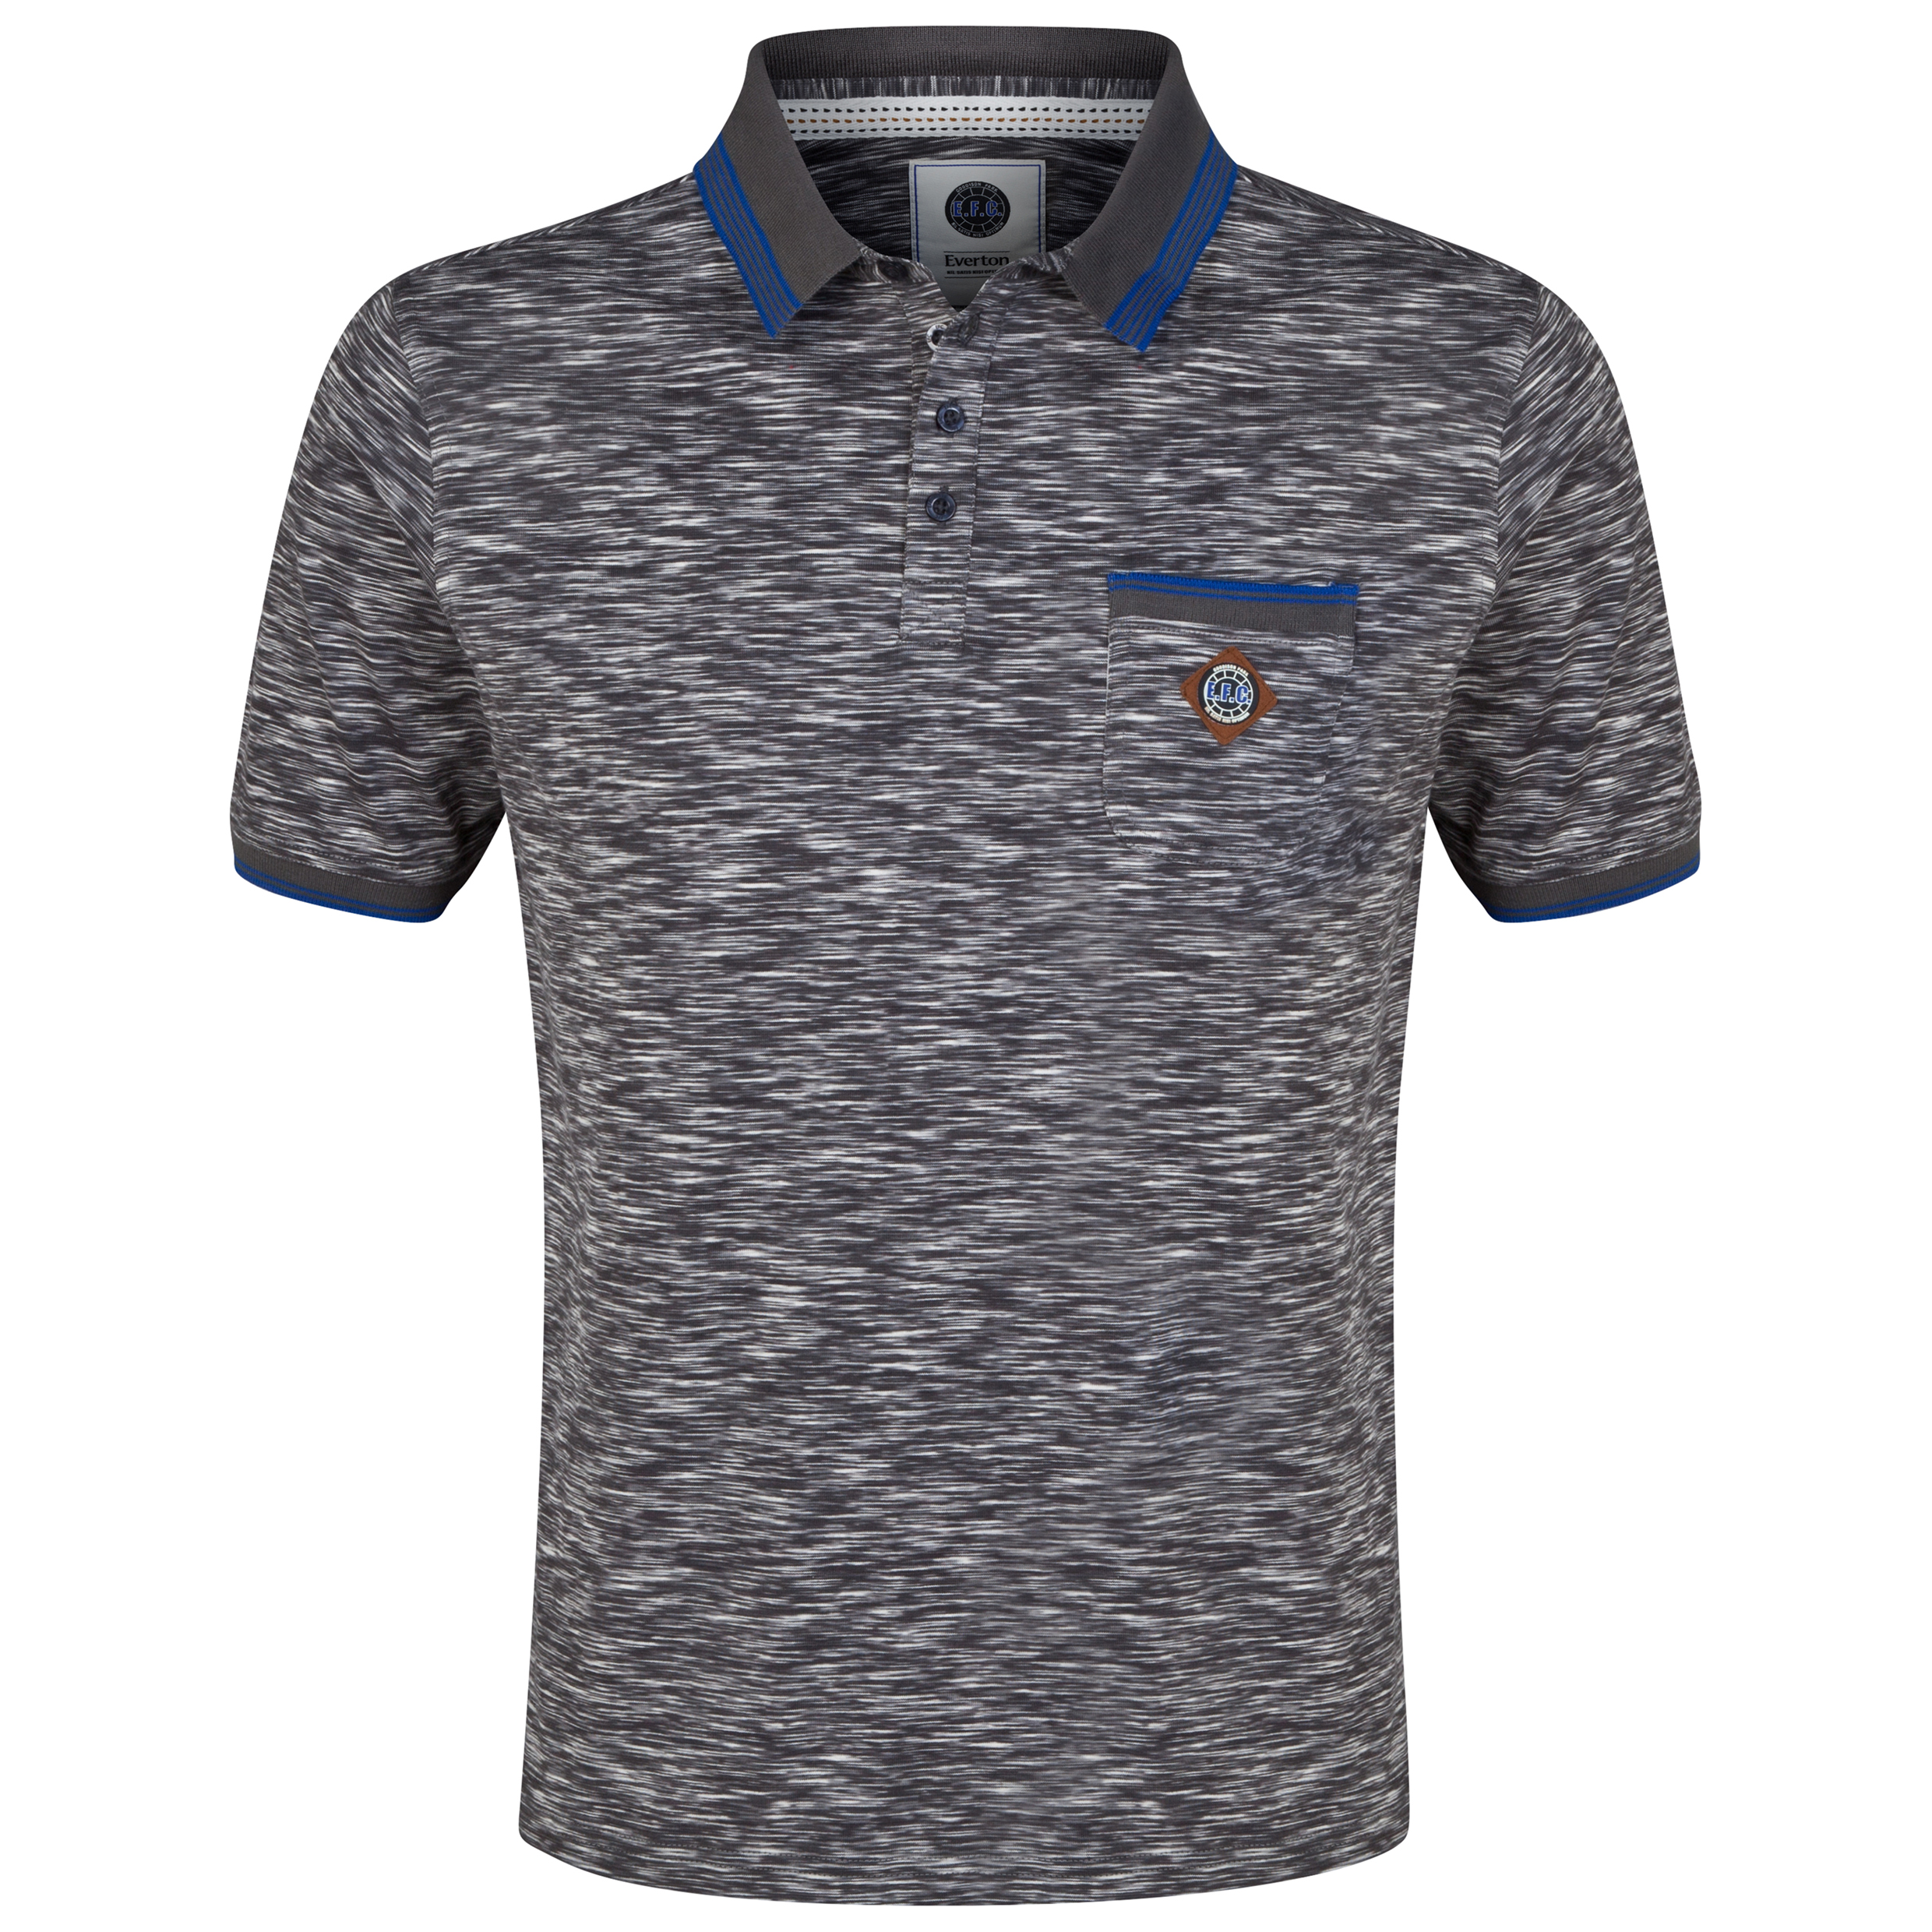 Everton Polo Shirt - Charcoal - Mens